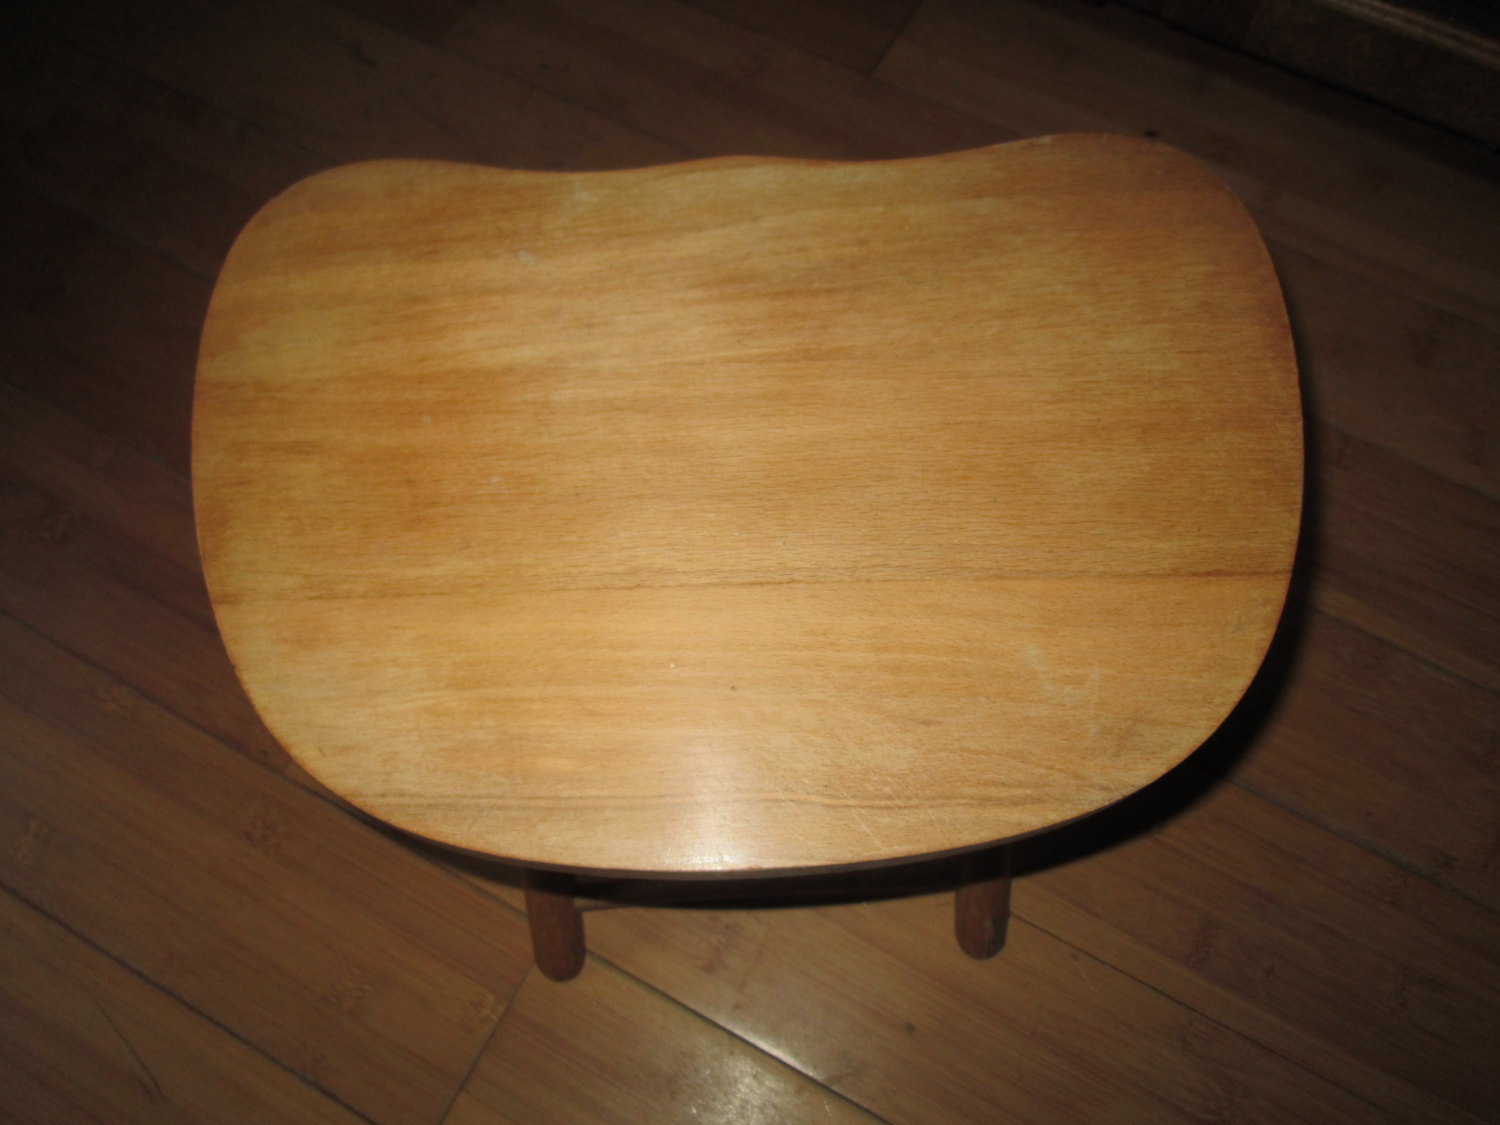 Magnificent Vintage Wooden Stool Nevco Folding Stool Step Stool Childs Or Kitchen Stool Caraccident5 Cool Chair Designs And Ideas Caraccident5Info